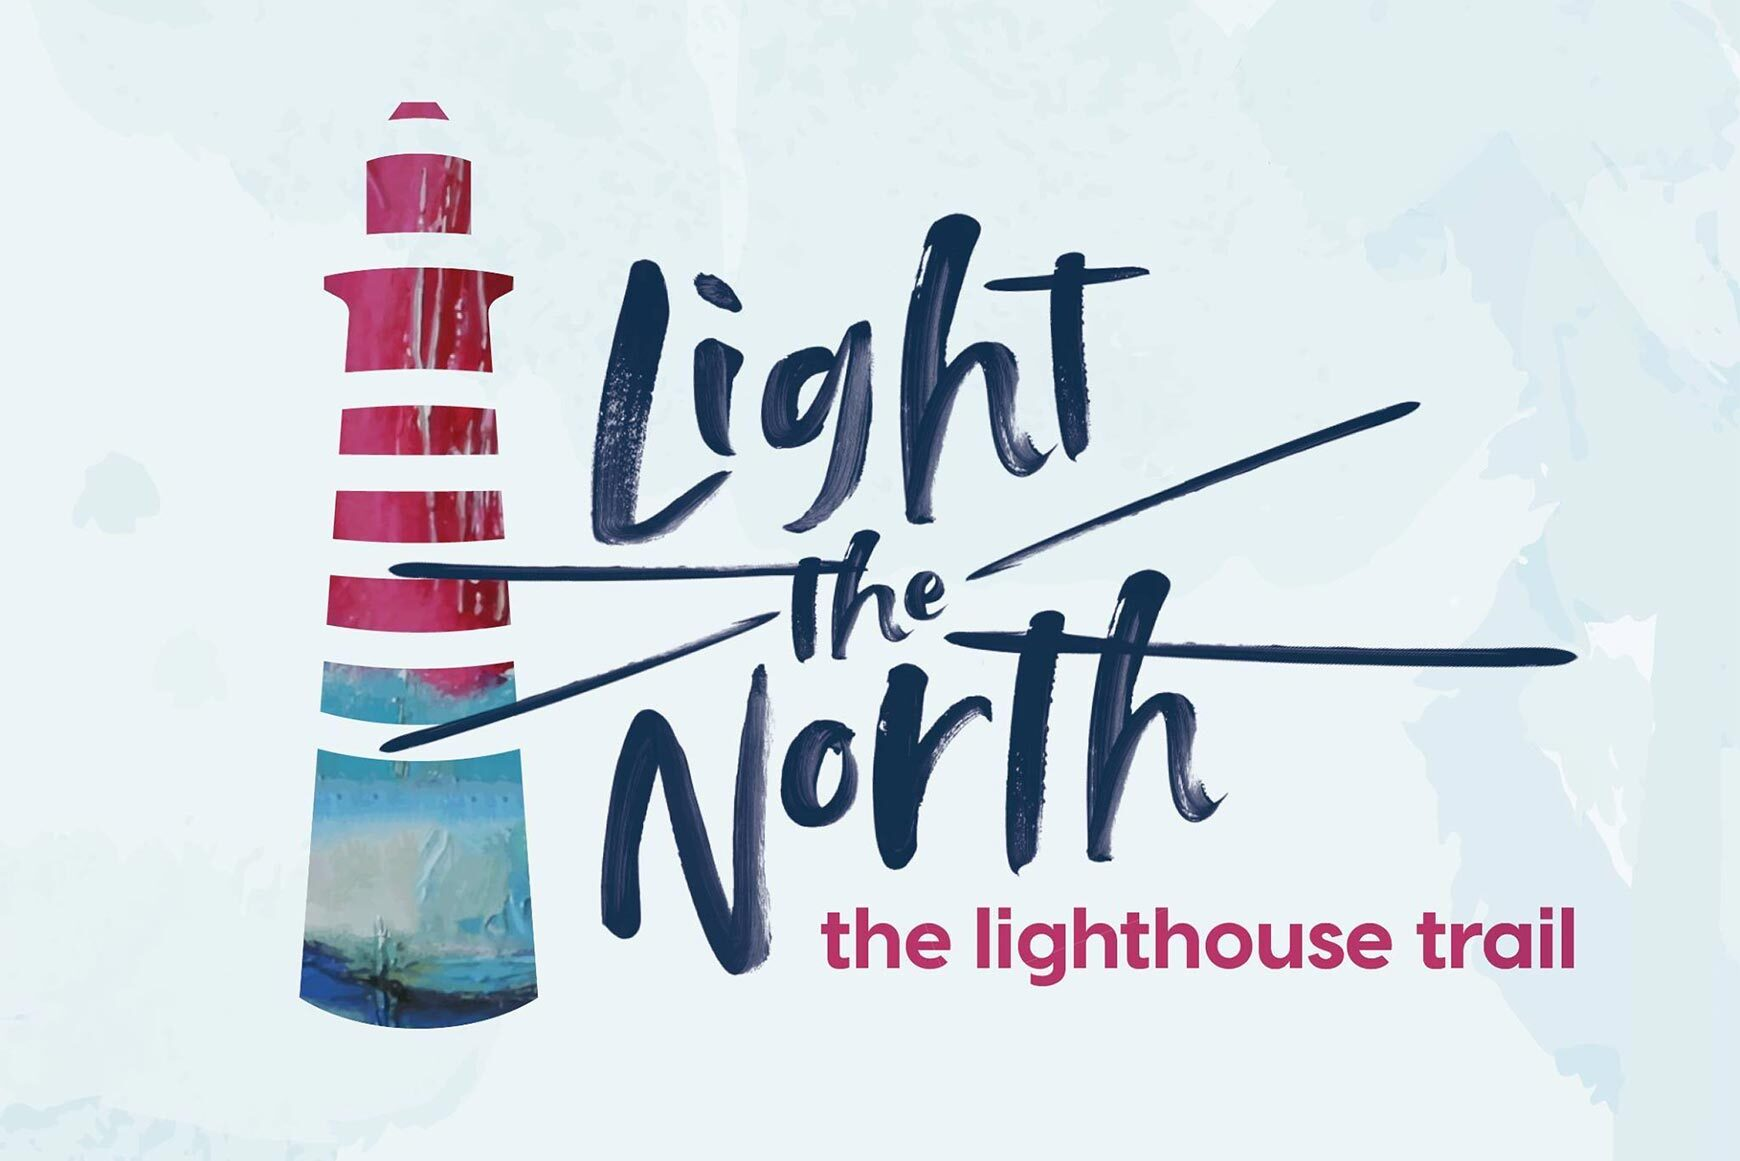 Helping to Light the North